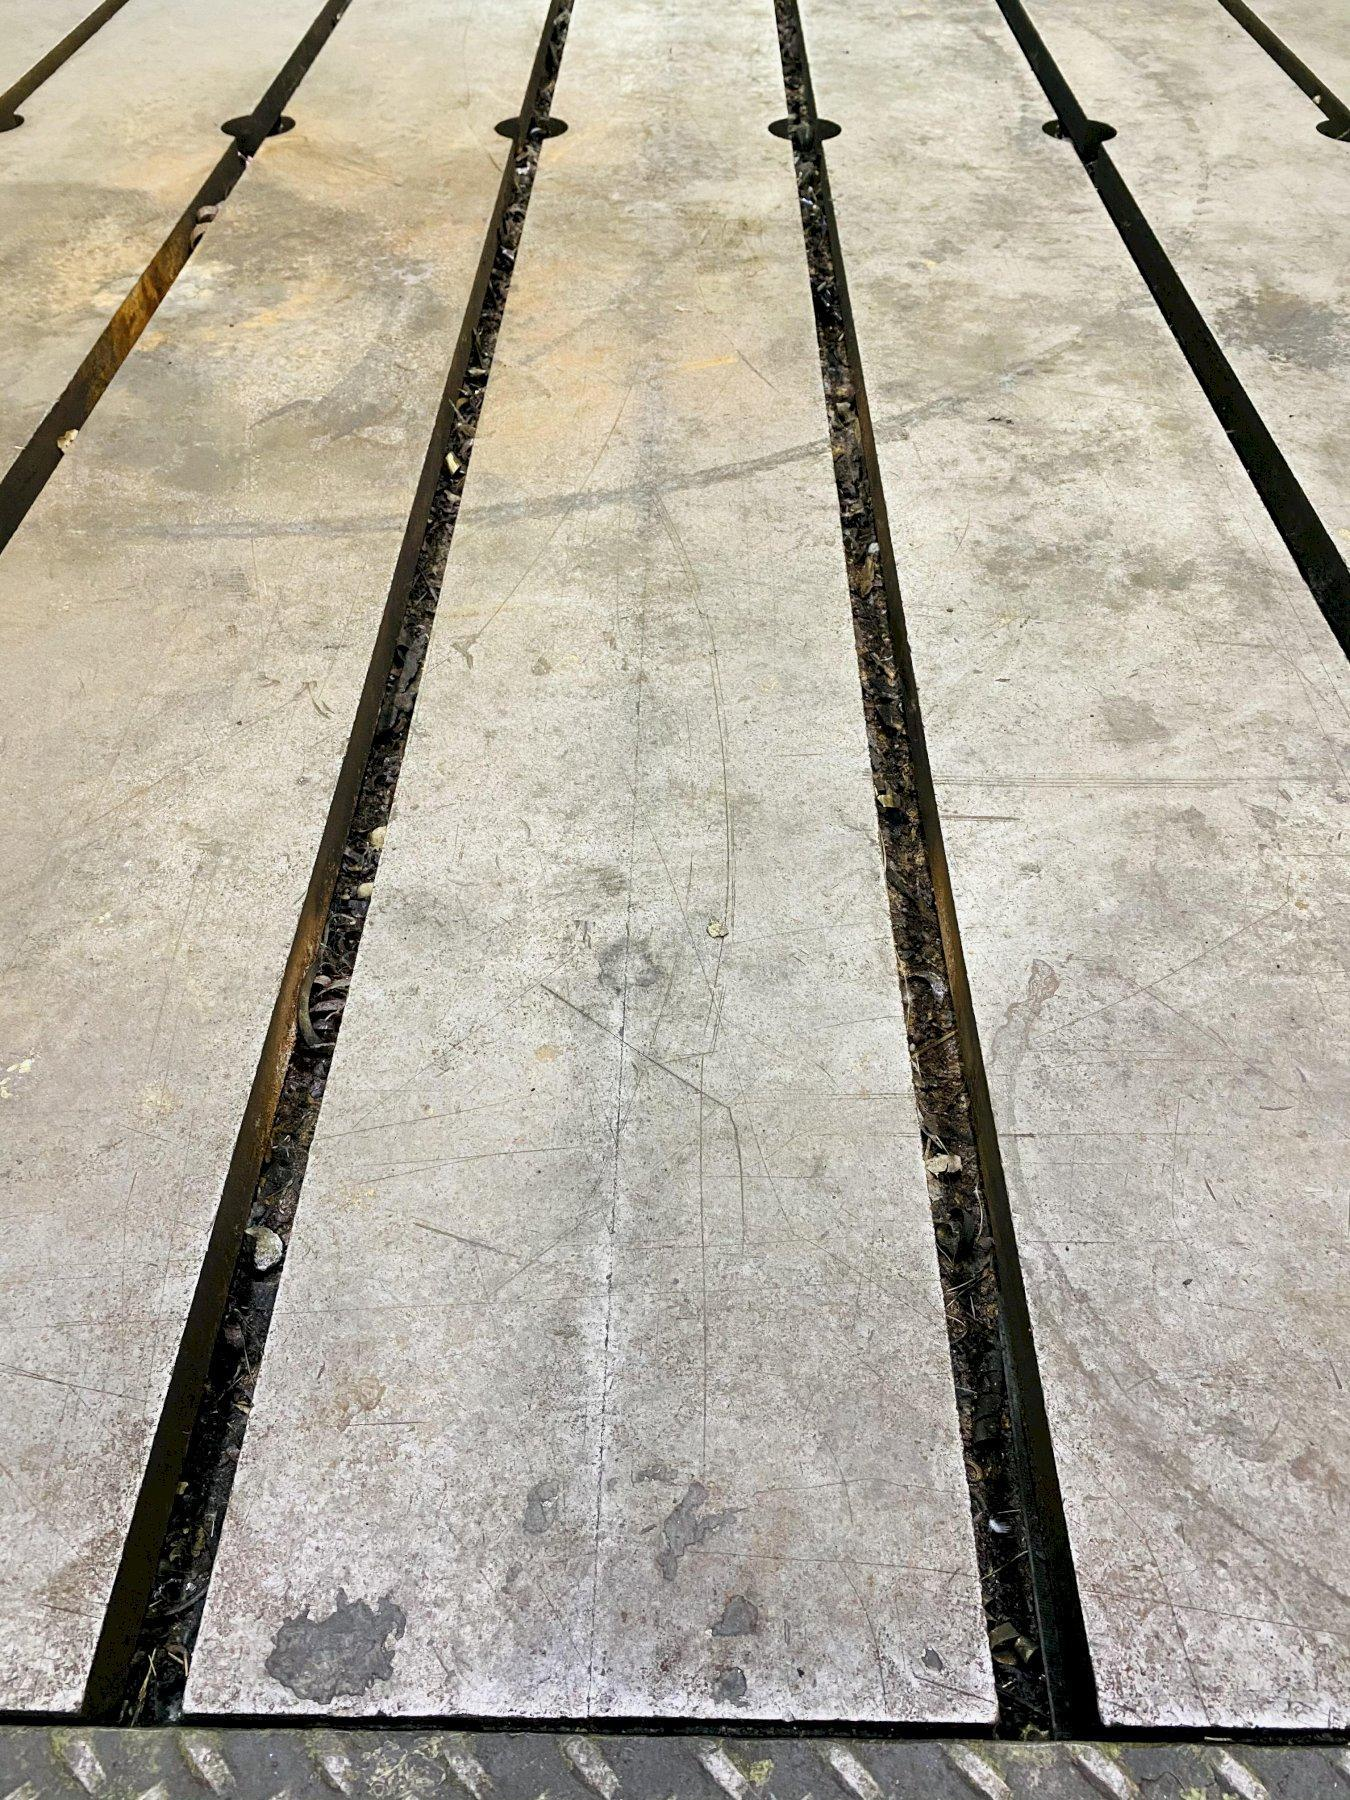 "144"" X 288"" X 14"" GIDDINGS & LEWIS T-SLOTTED FLOOR PLATE. STOCK # 0310121"